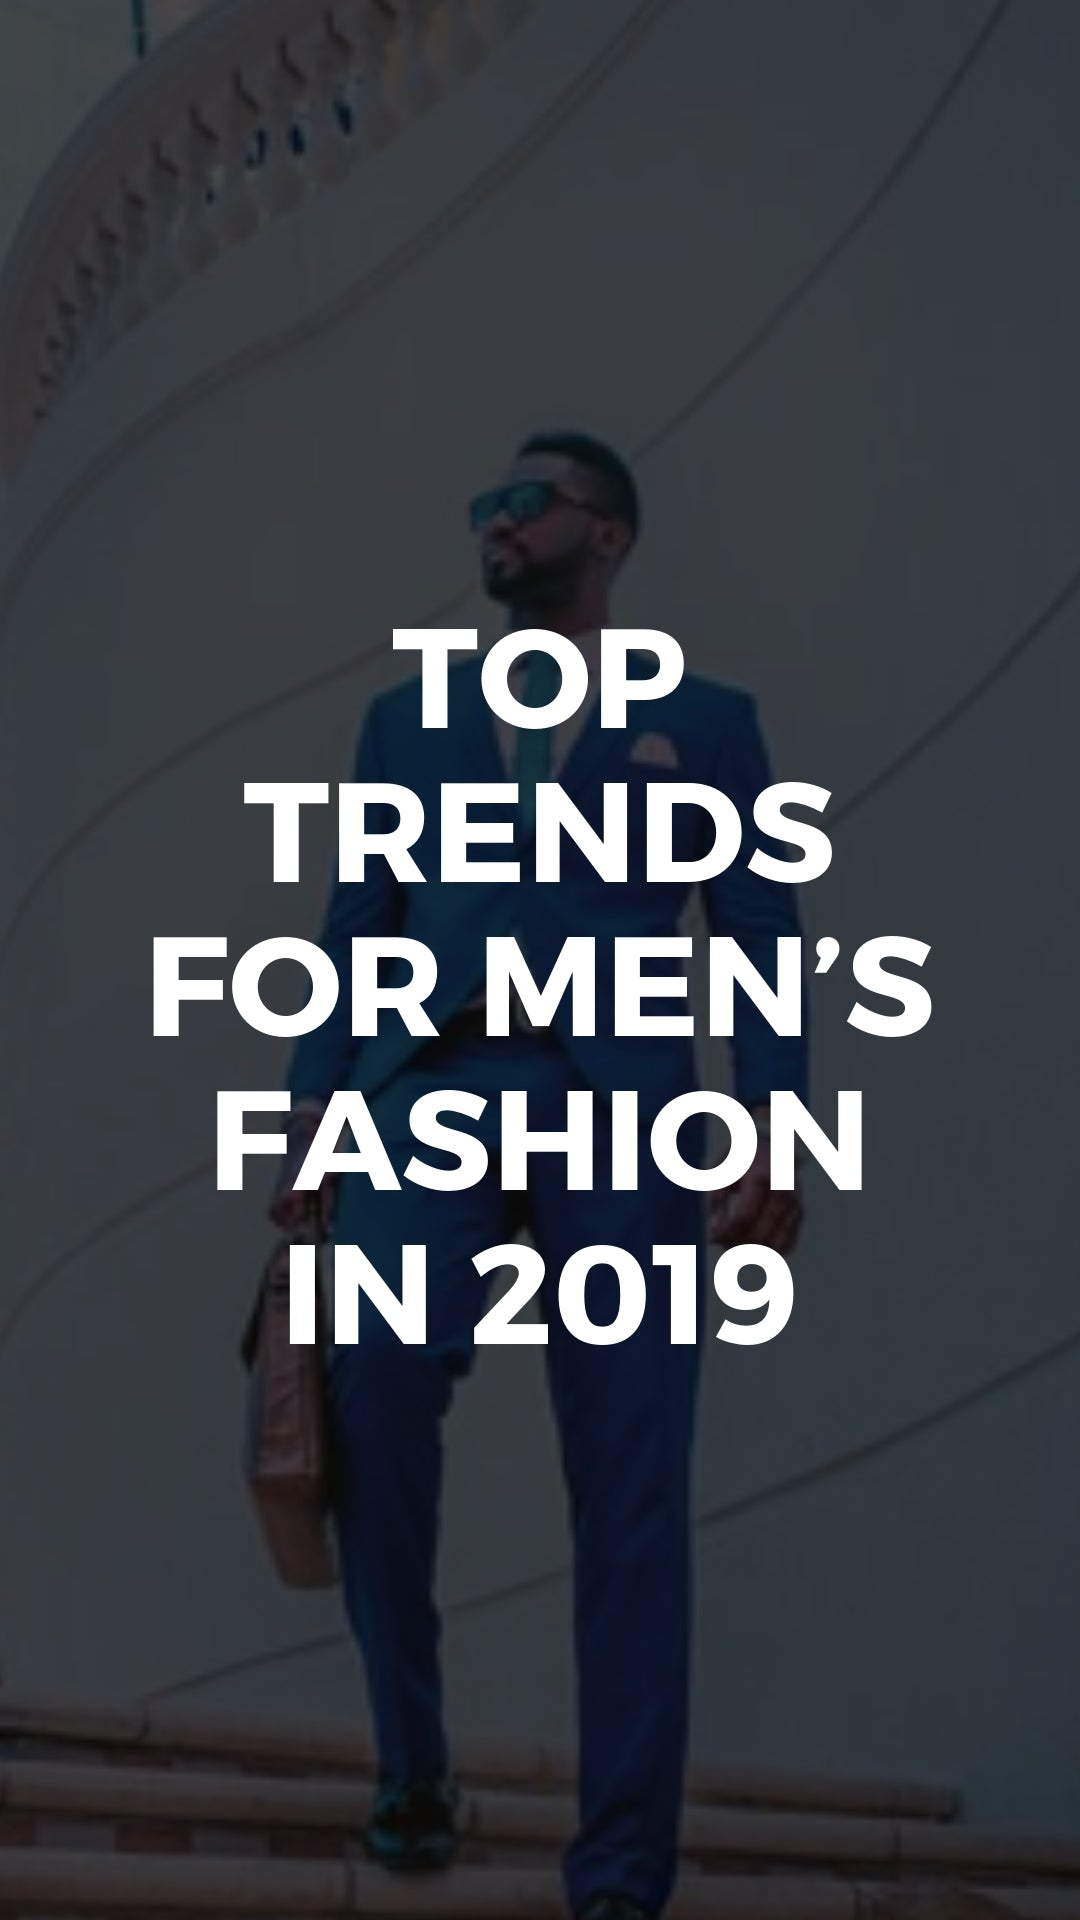 Mens fashion trends 2019 #fashion #trends #2019 #fashiontips #mensfashion